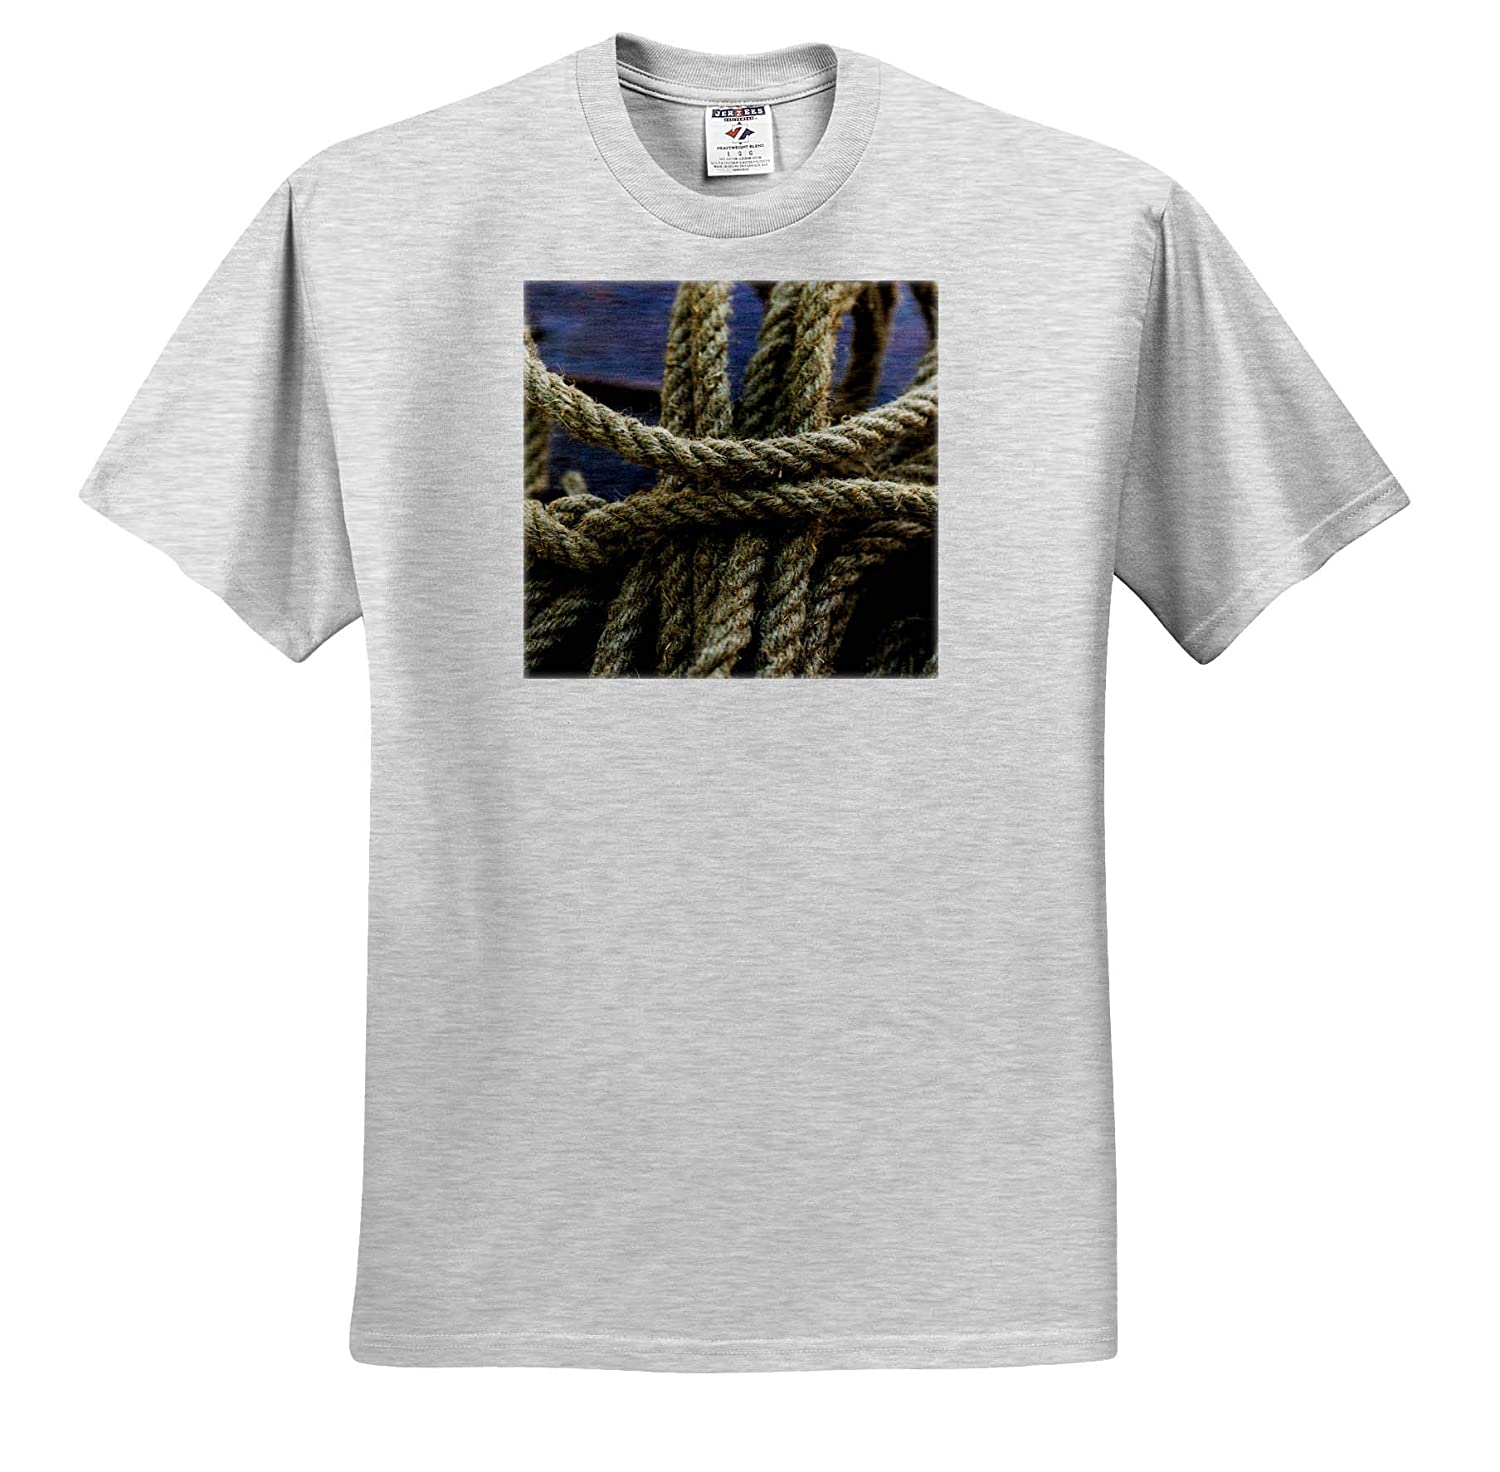 3dRose Alexis Photography Image of a Turn of a Manila Rope Hemp Root Wood T-Shirts Objects Rope